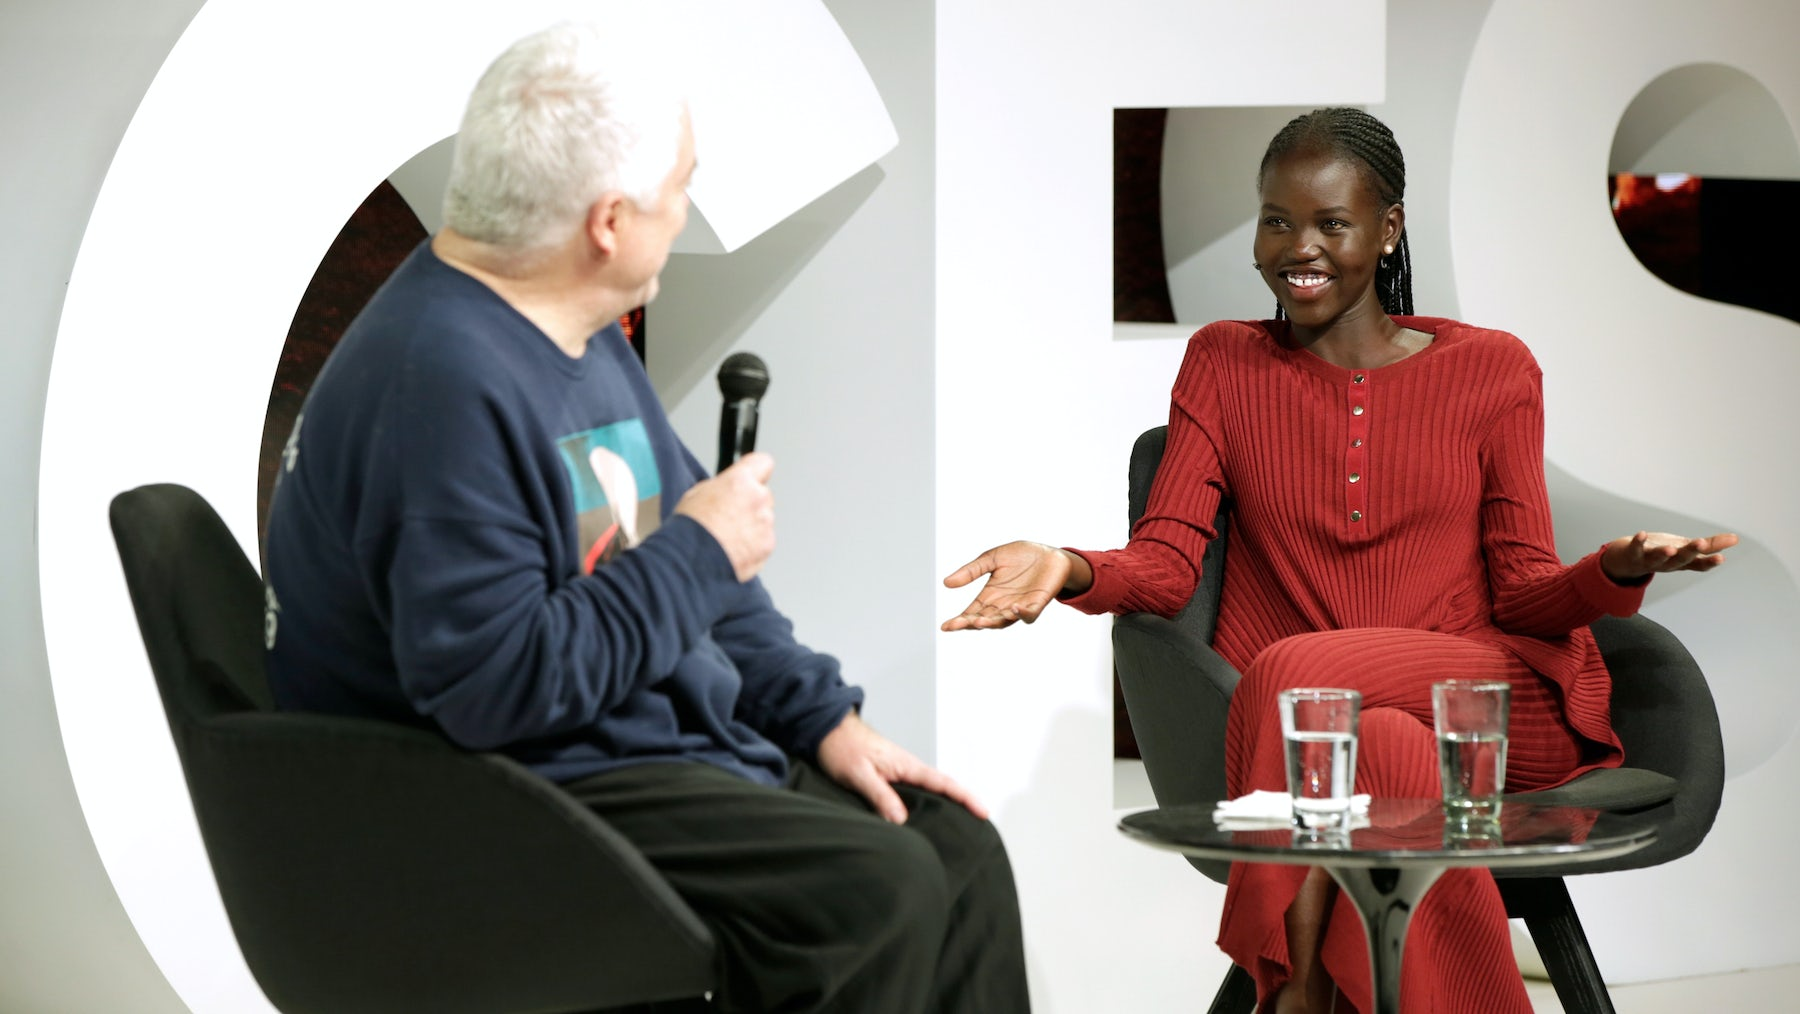 Tim Blanks and Adut Akech on stage at BoF's VOICES   Source: Getty Images for The Business of Fashion